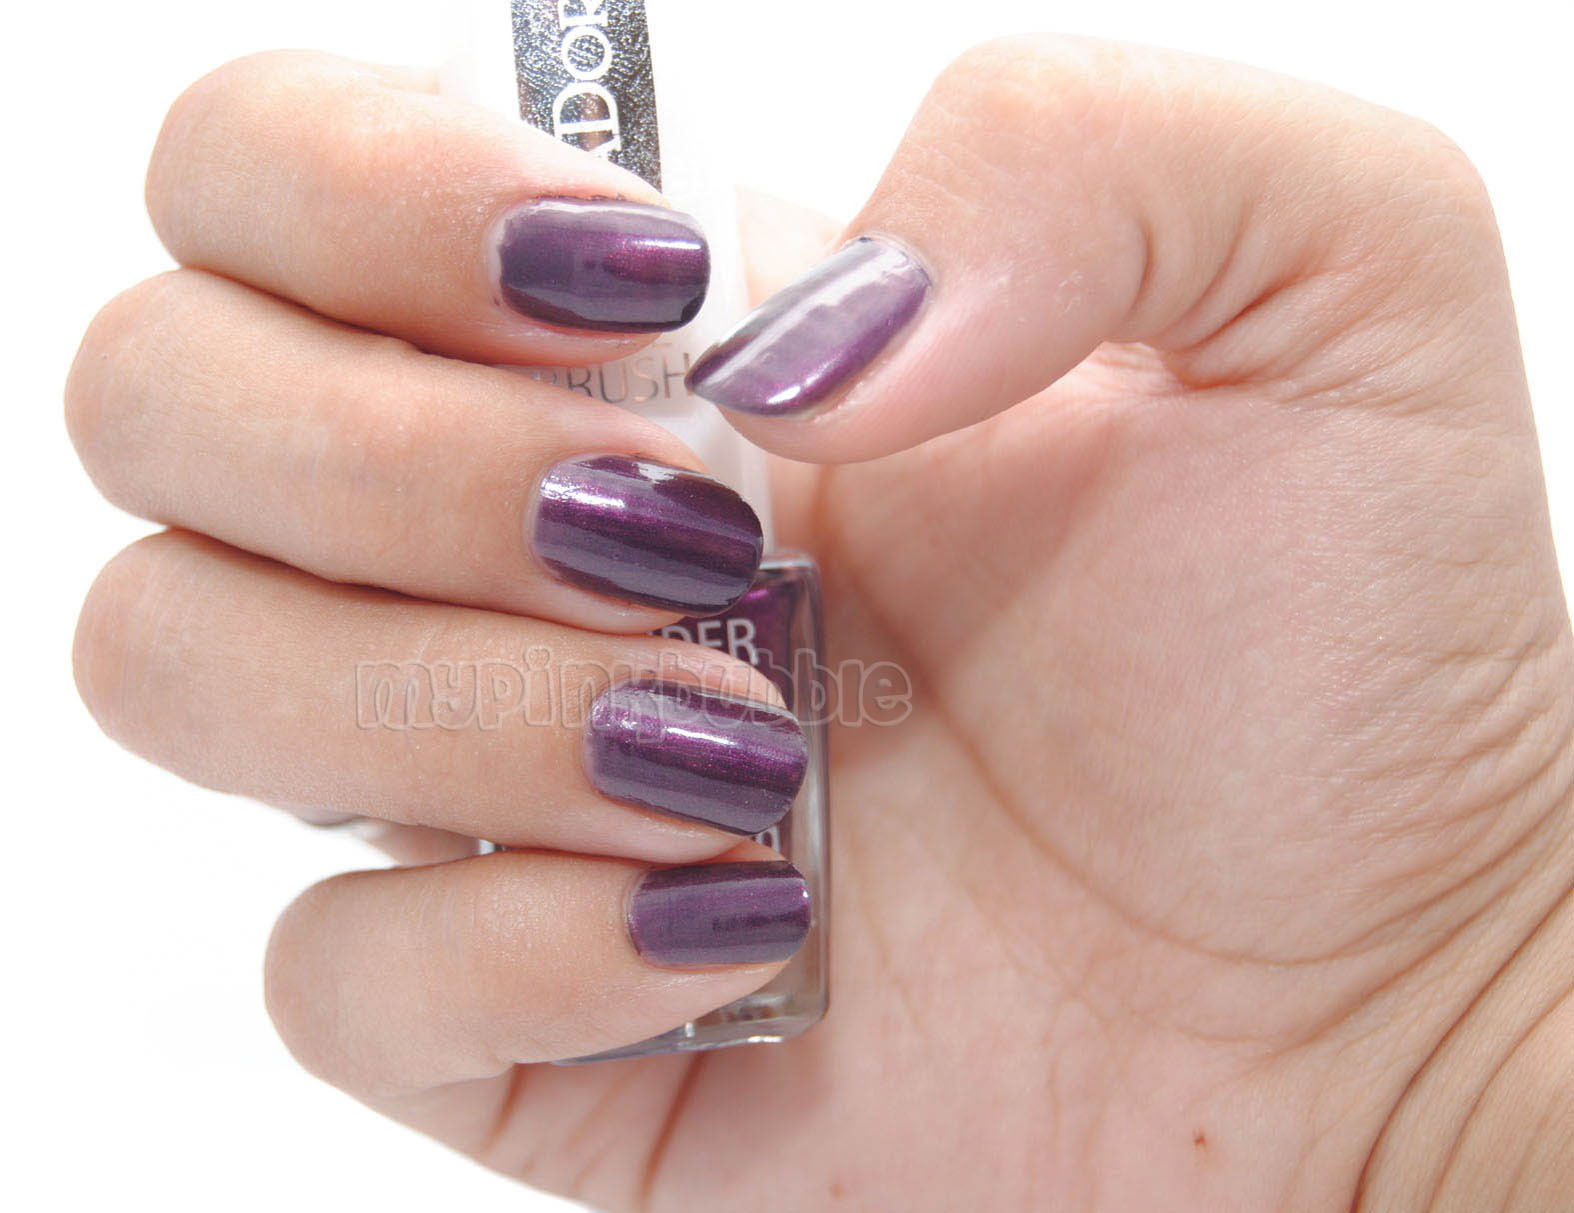 Isadora Isadora 789 purple prune swatch